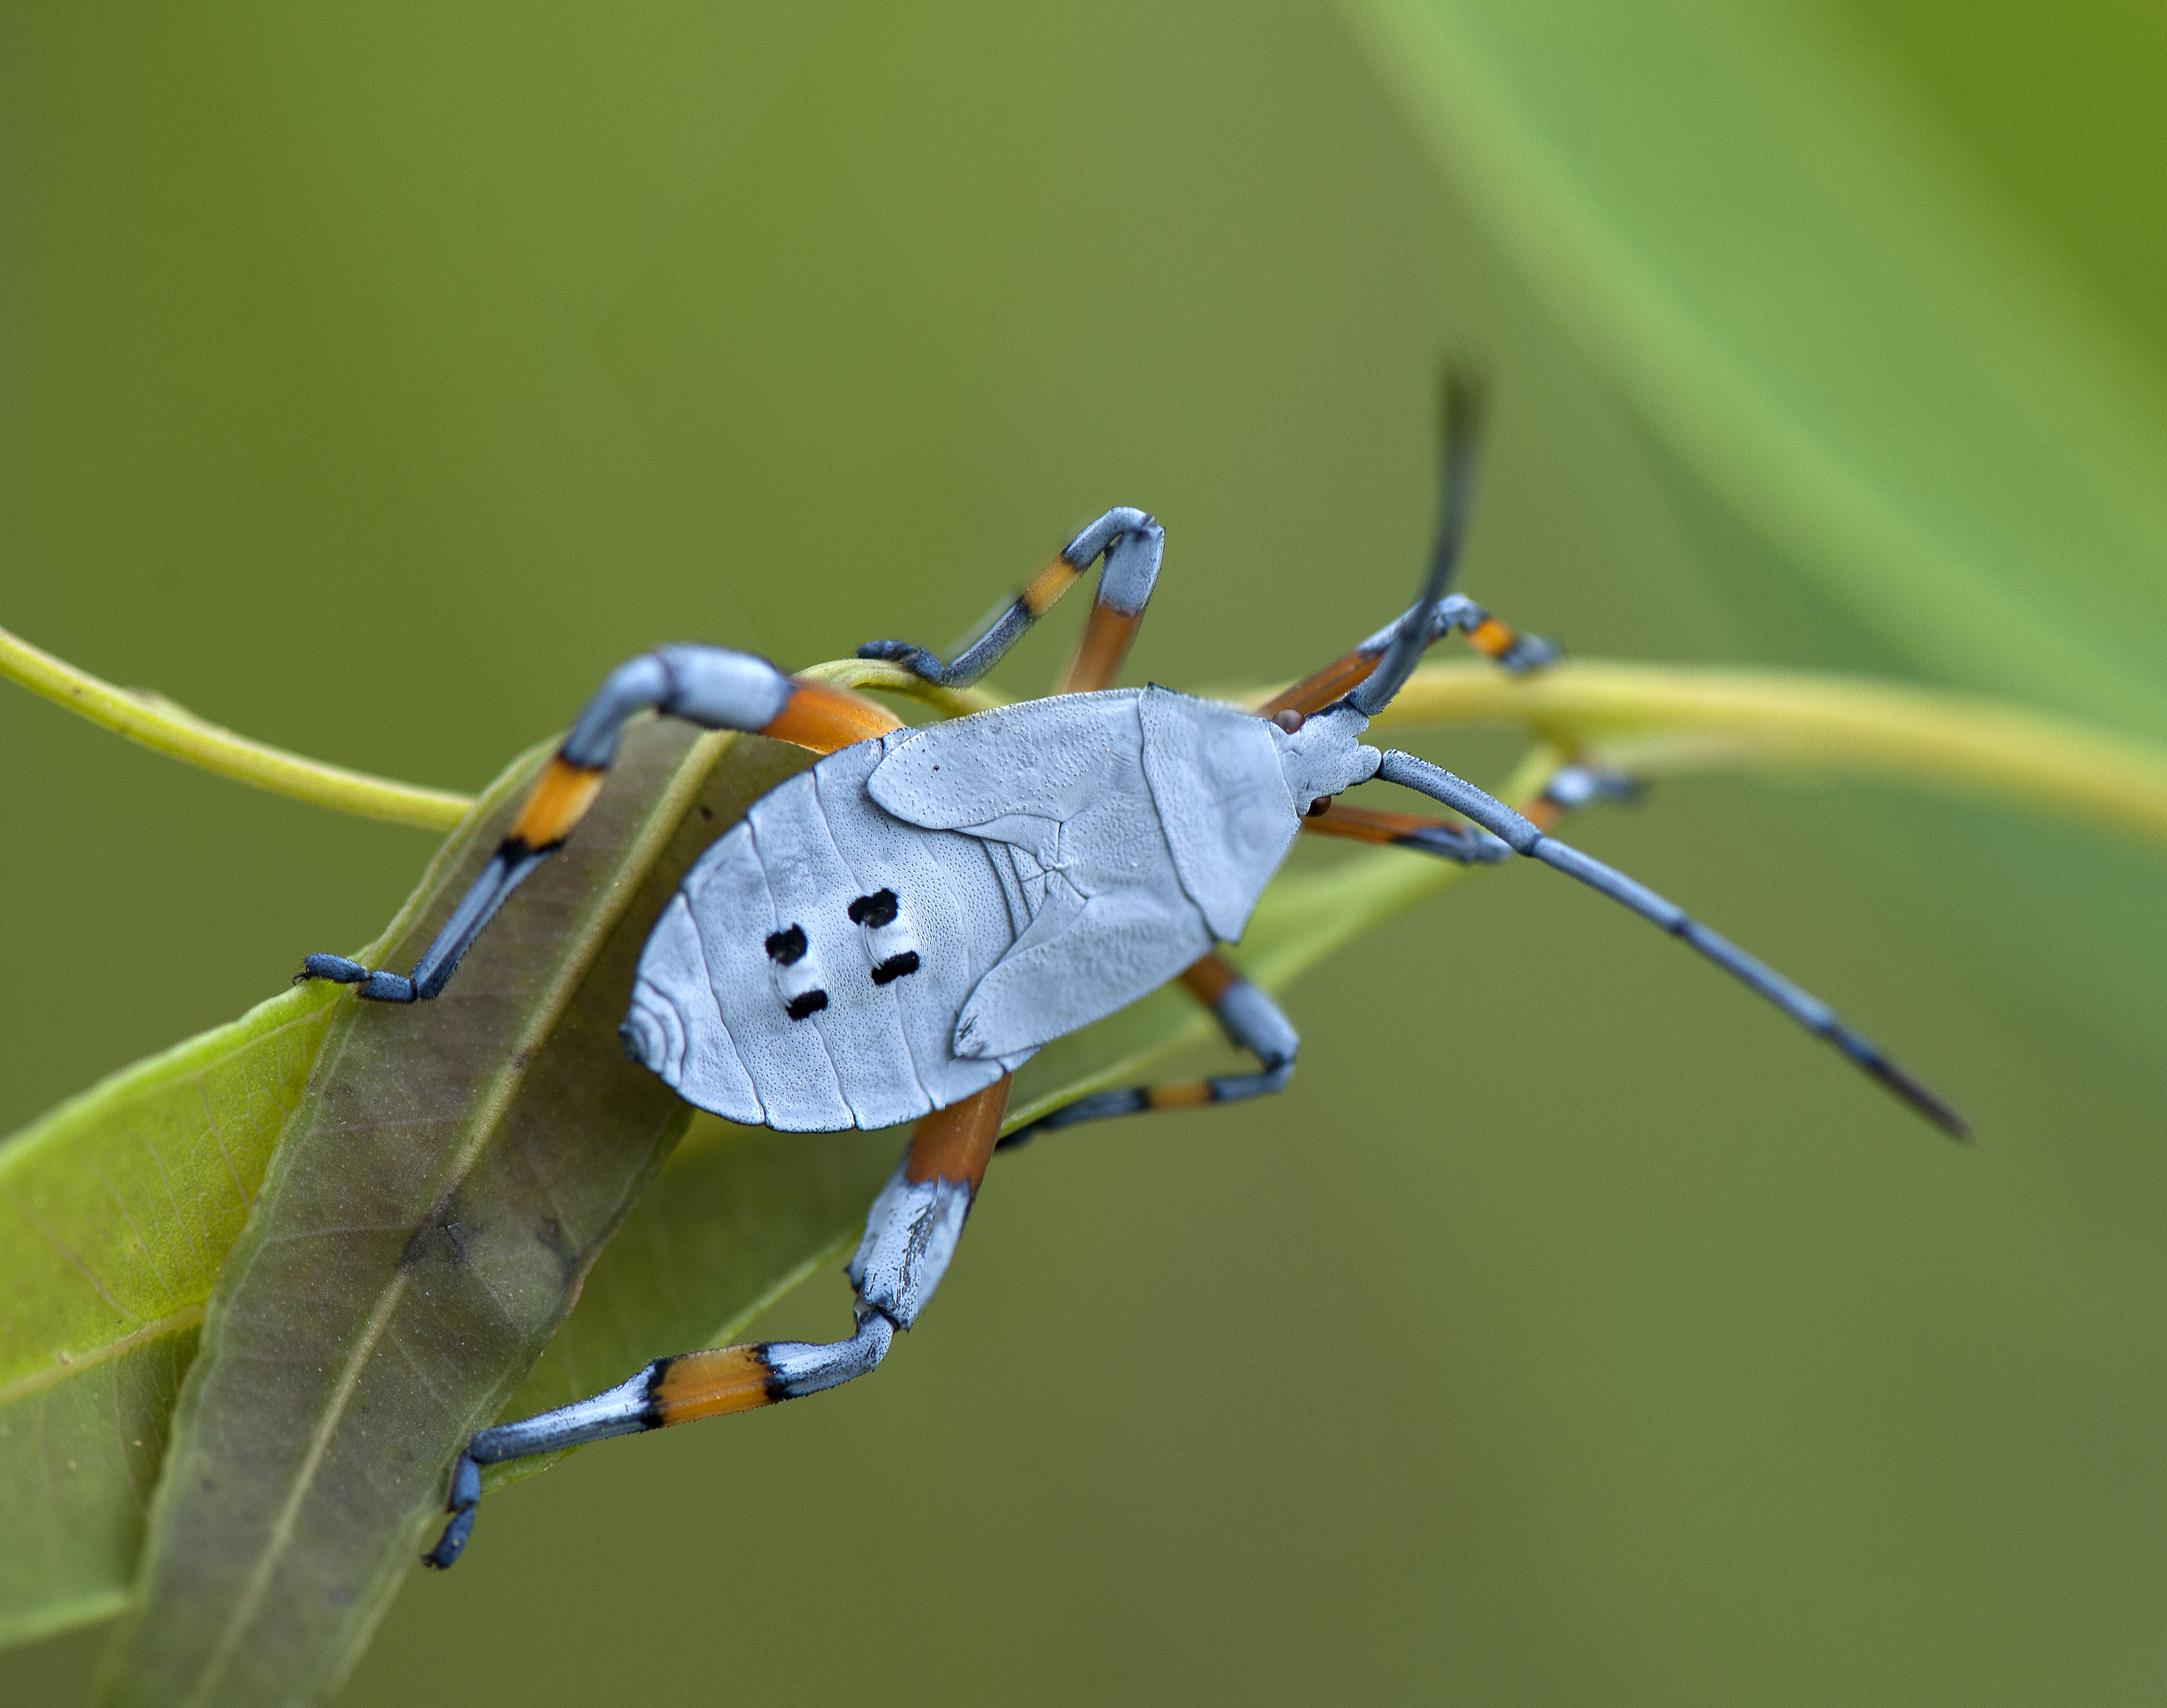 The important role of insects